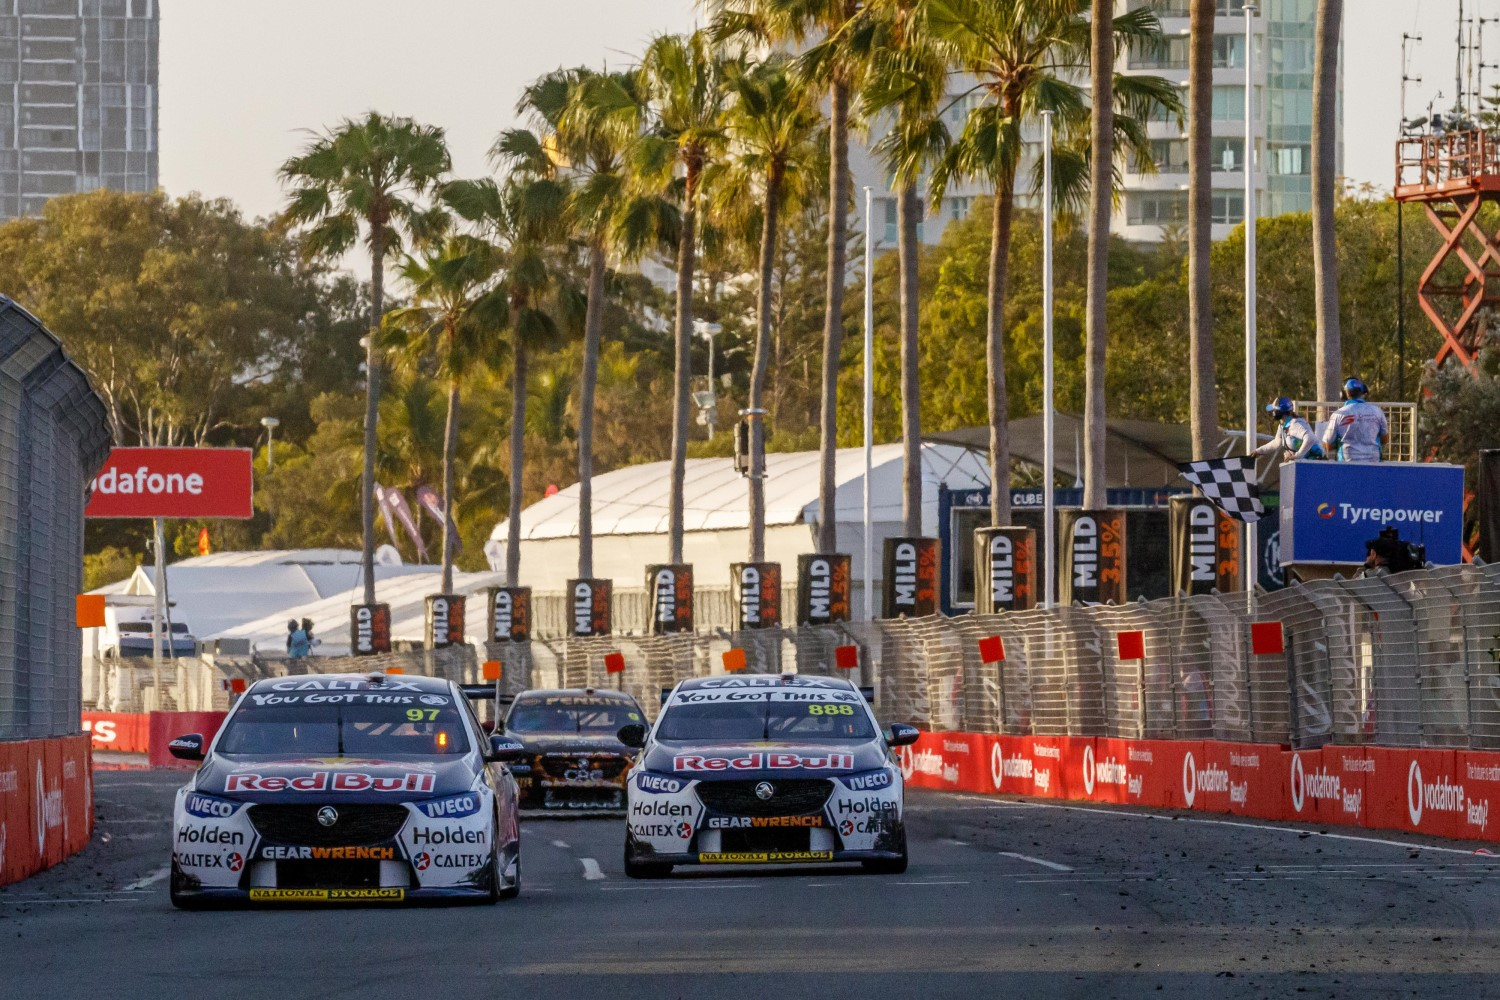 van Gisbergen leads the sister Red Bull Holden of Lowndes across the line in a close finish